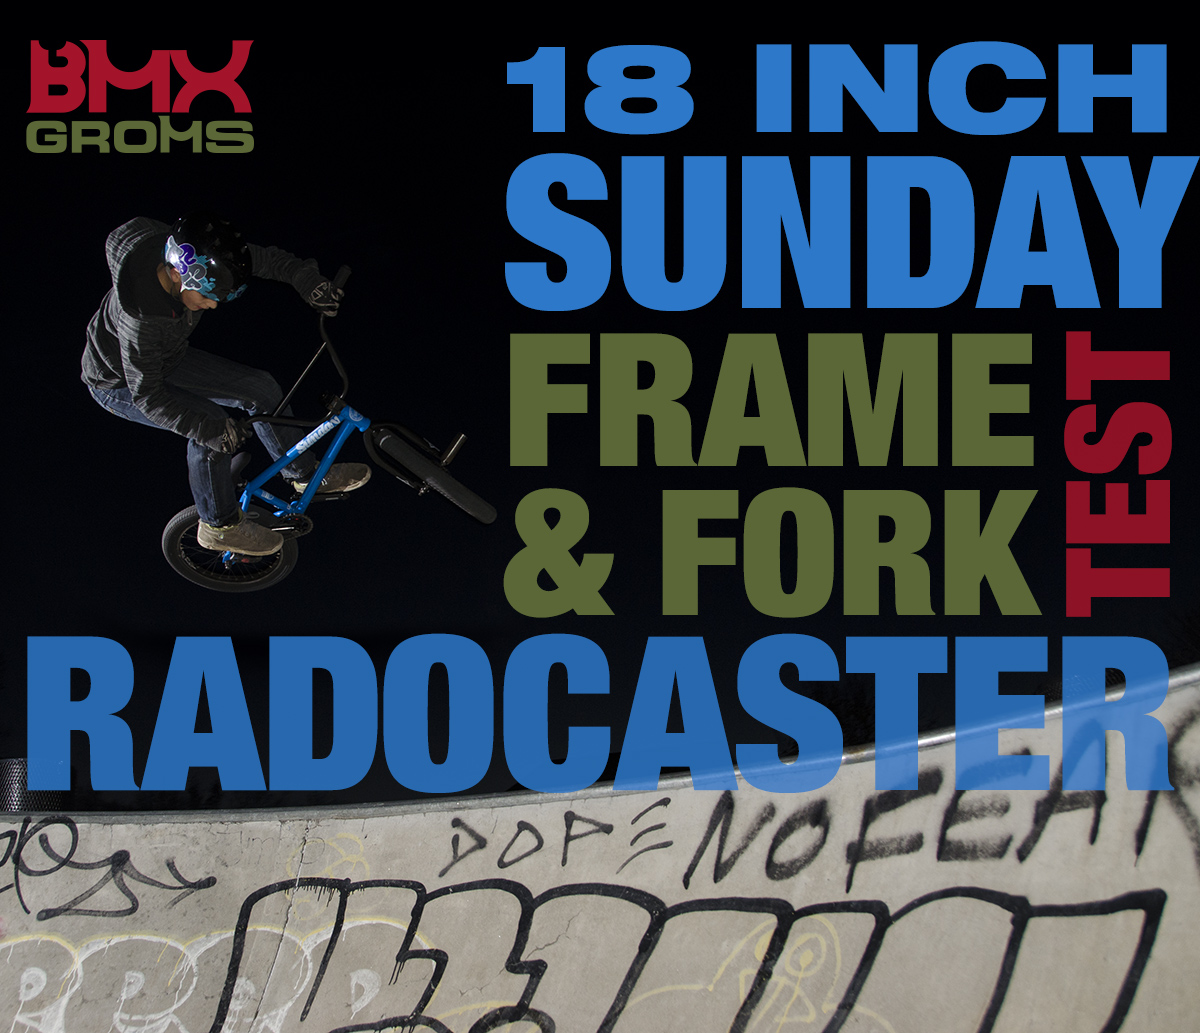 BMX Groms Sunday Radocaster 18 inch BMX Frame and Fork Test and Review